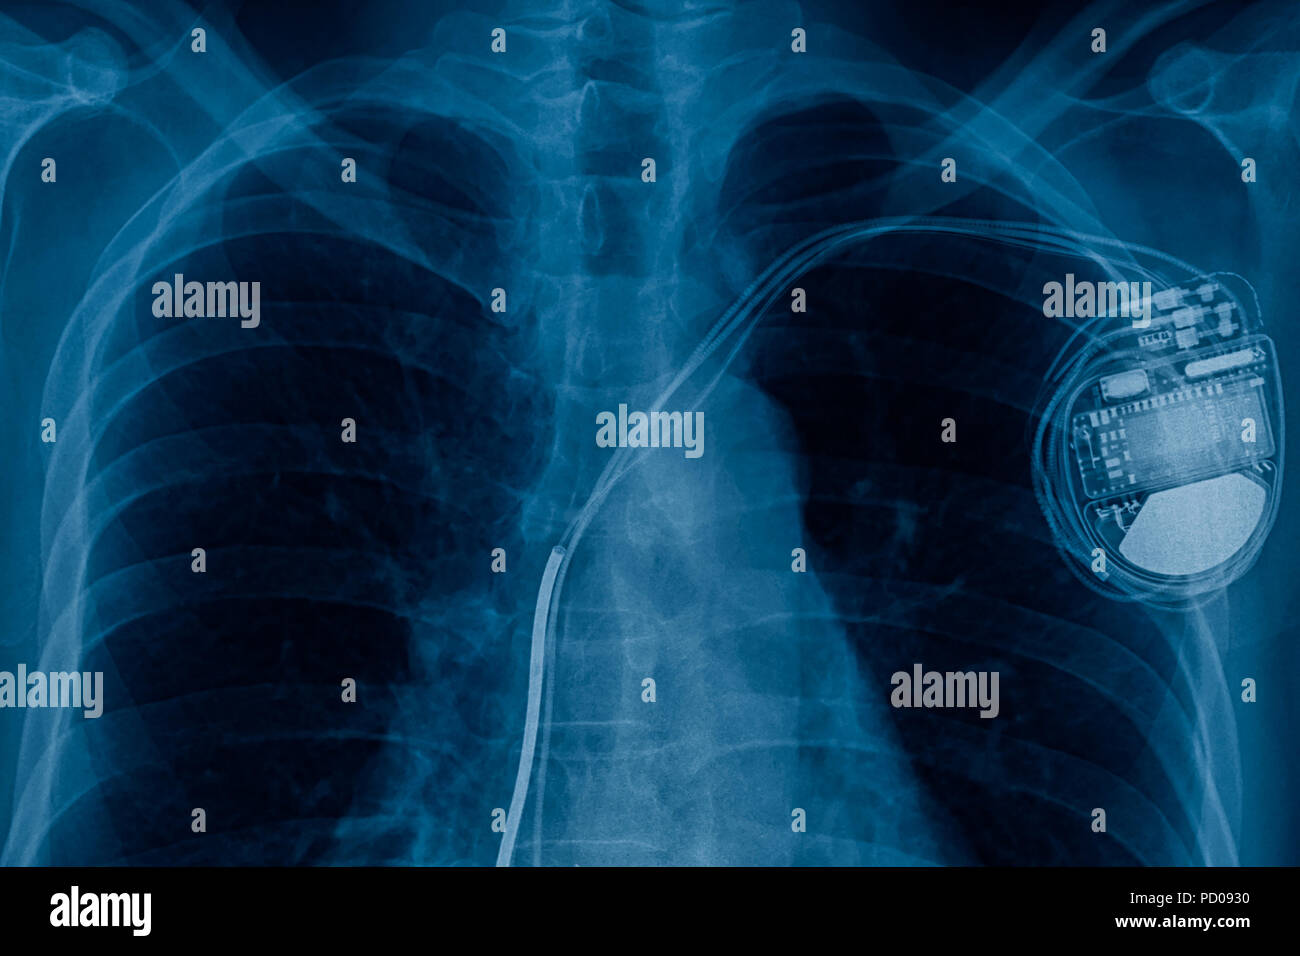 Pacemaker Stock Photos & Pacemaker Stock Images - Alamy